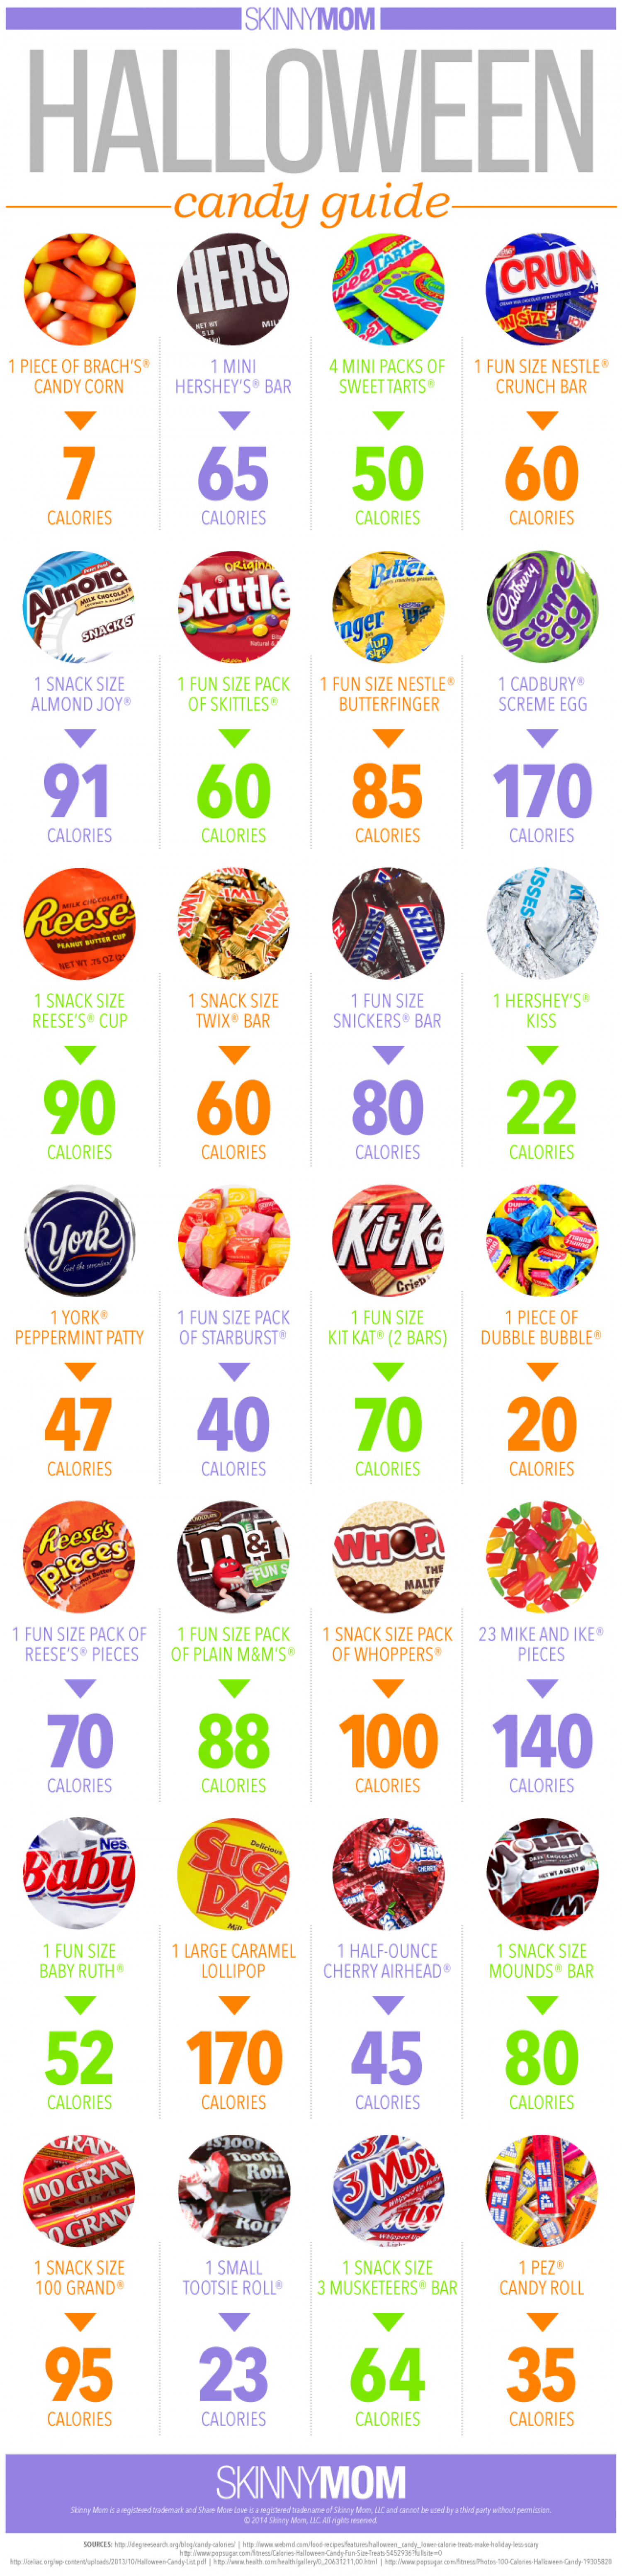 Halloween Candy Calories Guide